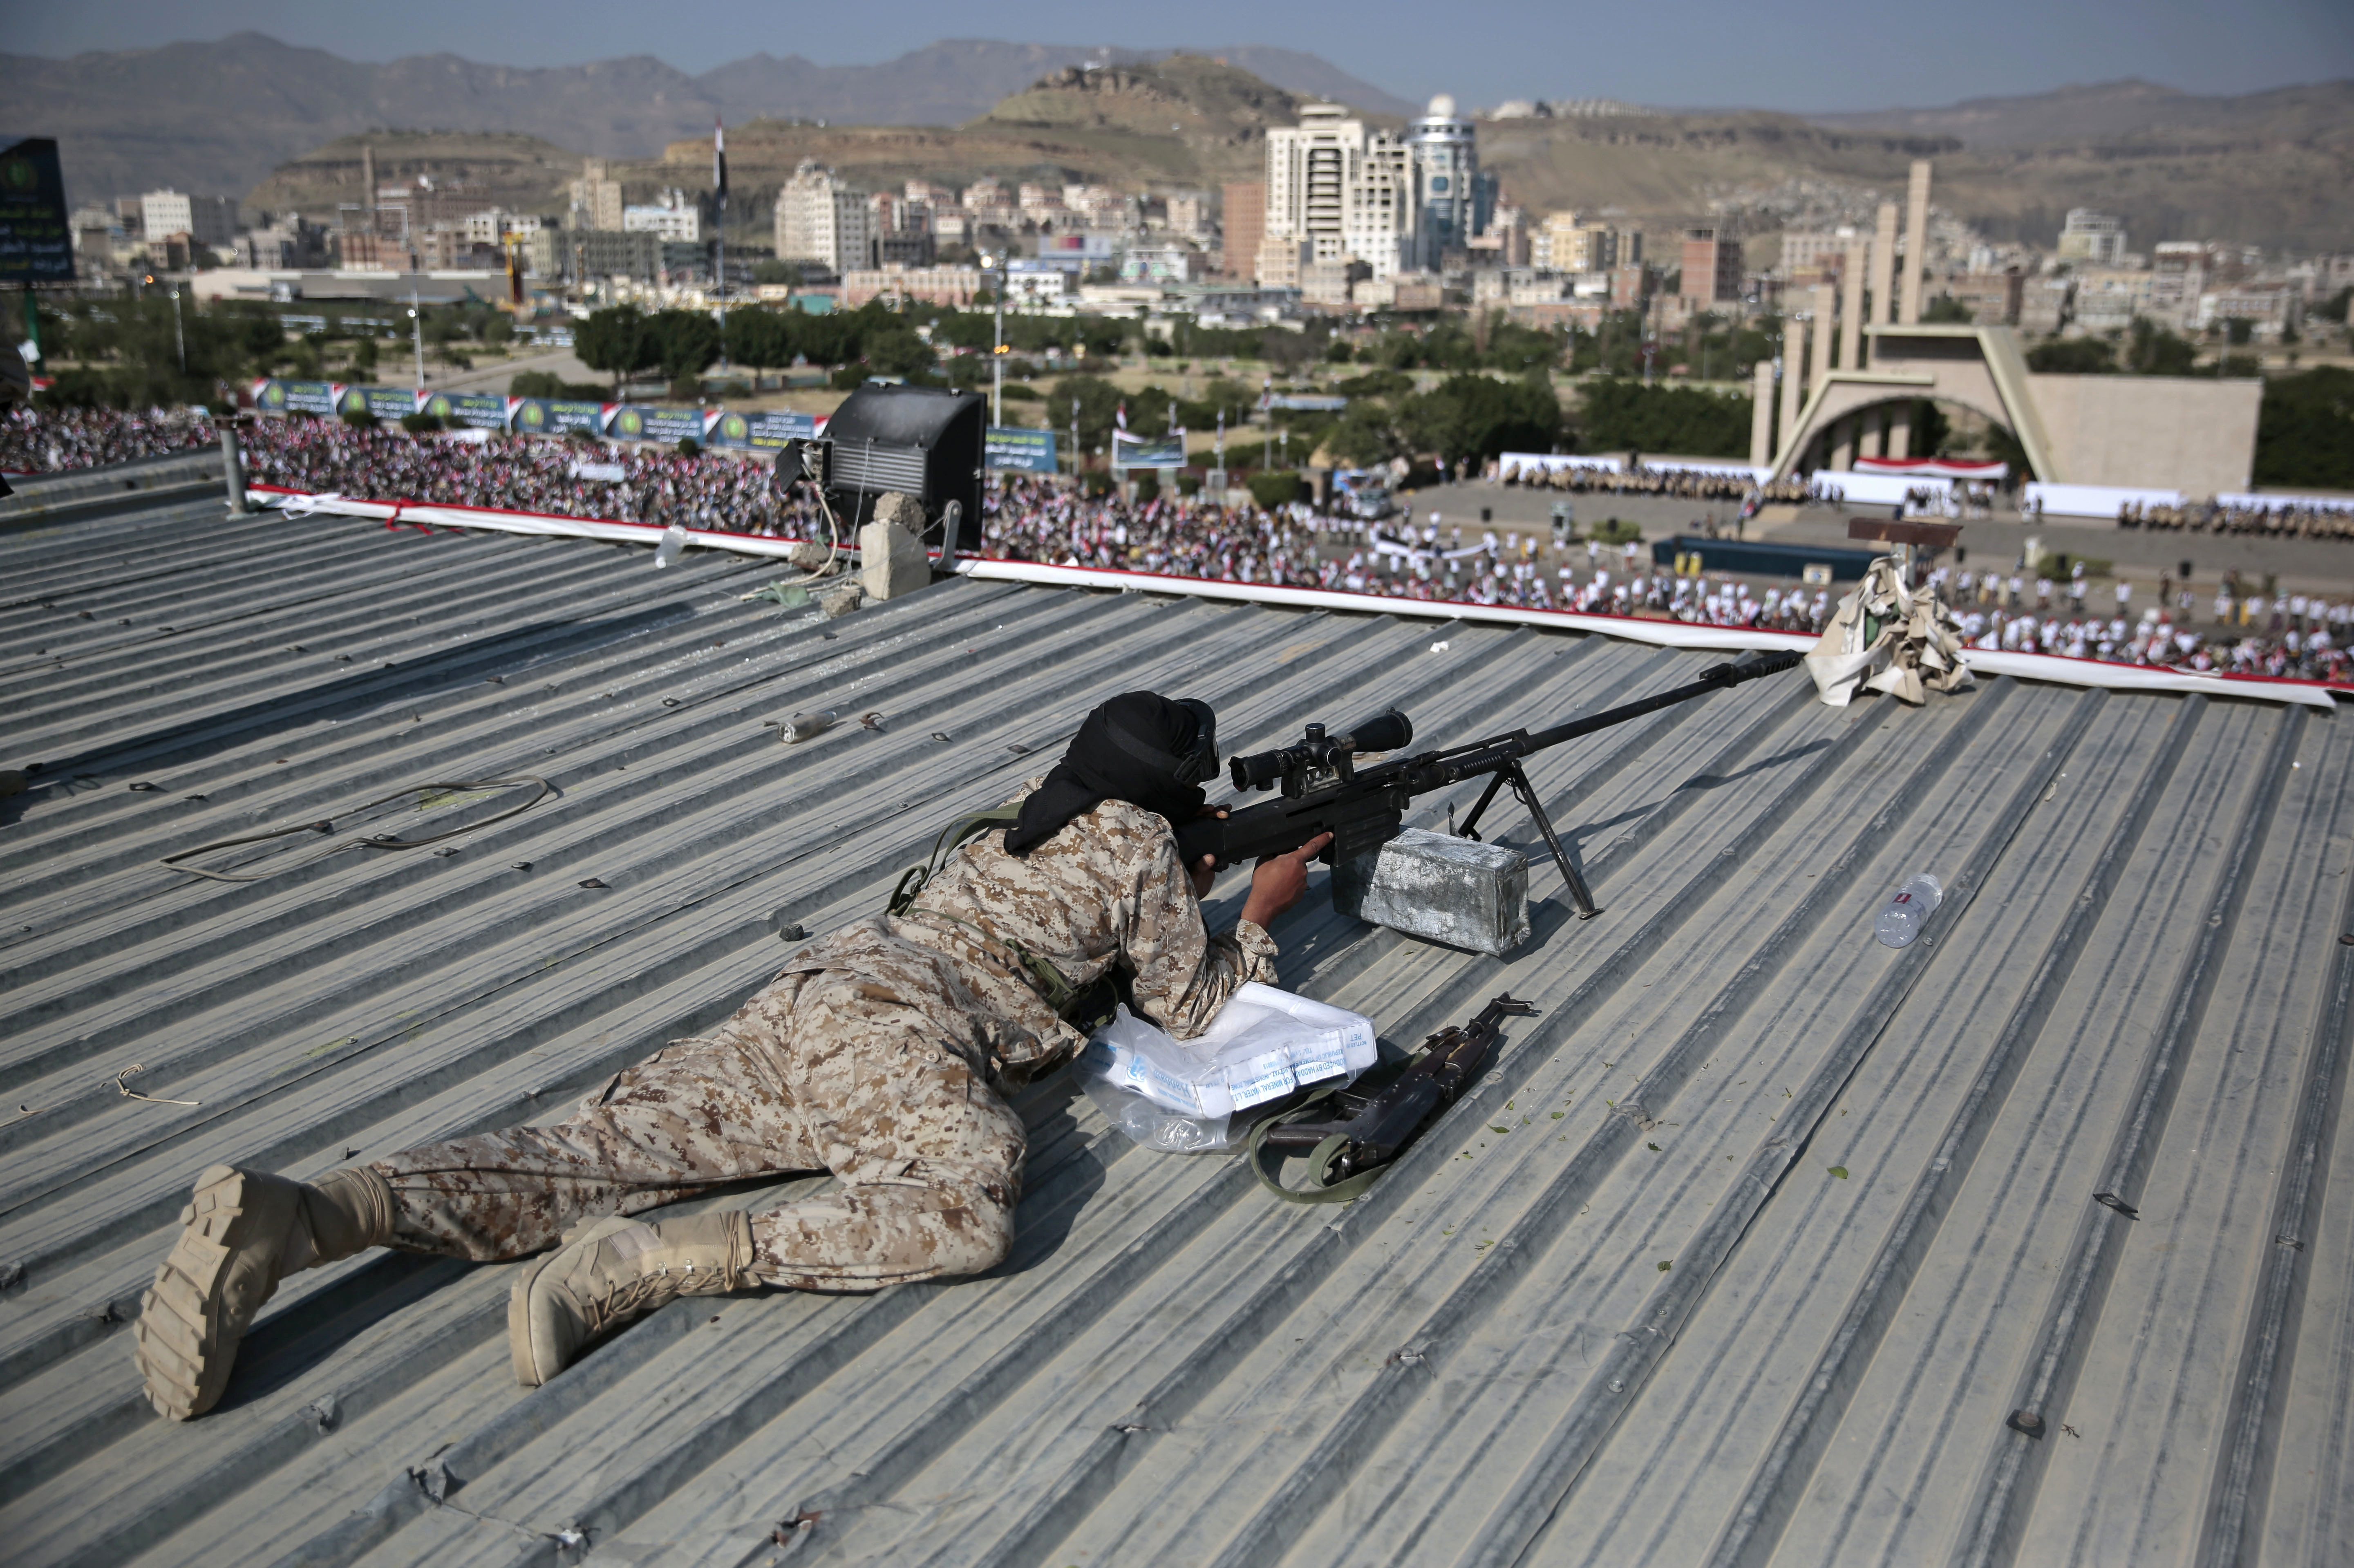 A Houthi Shiite sniper keeps watch over a rally to mark the third anniversary of the Houthis' takeover of the Yemeni capital, in Sanaa